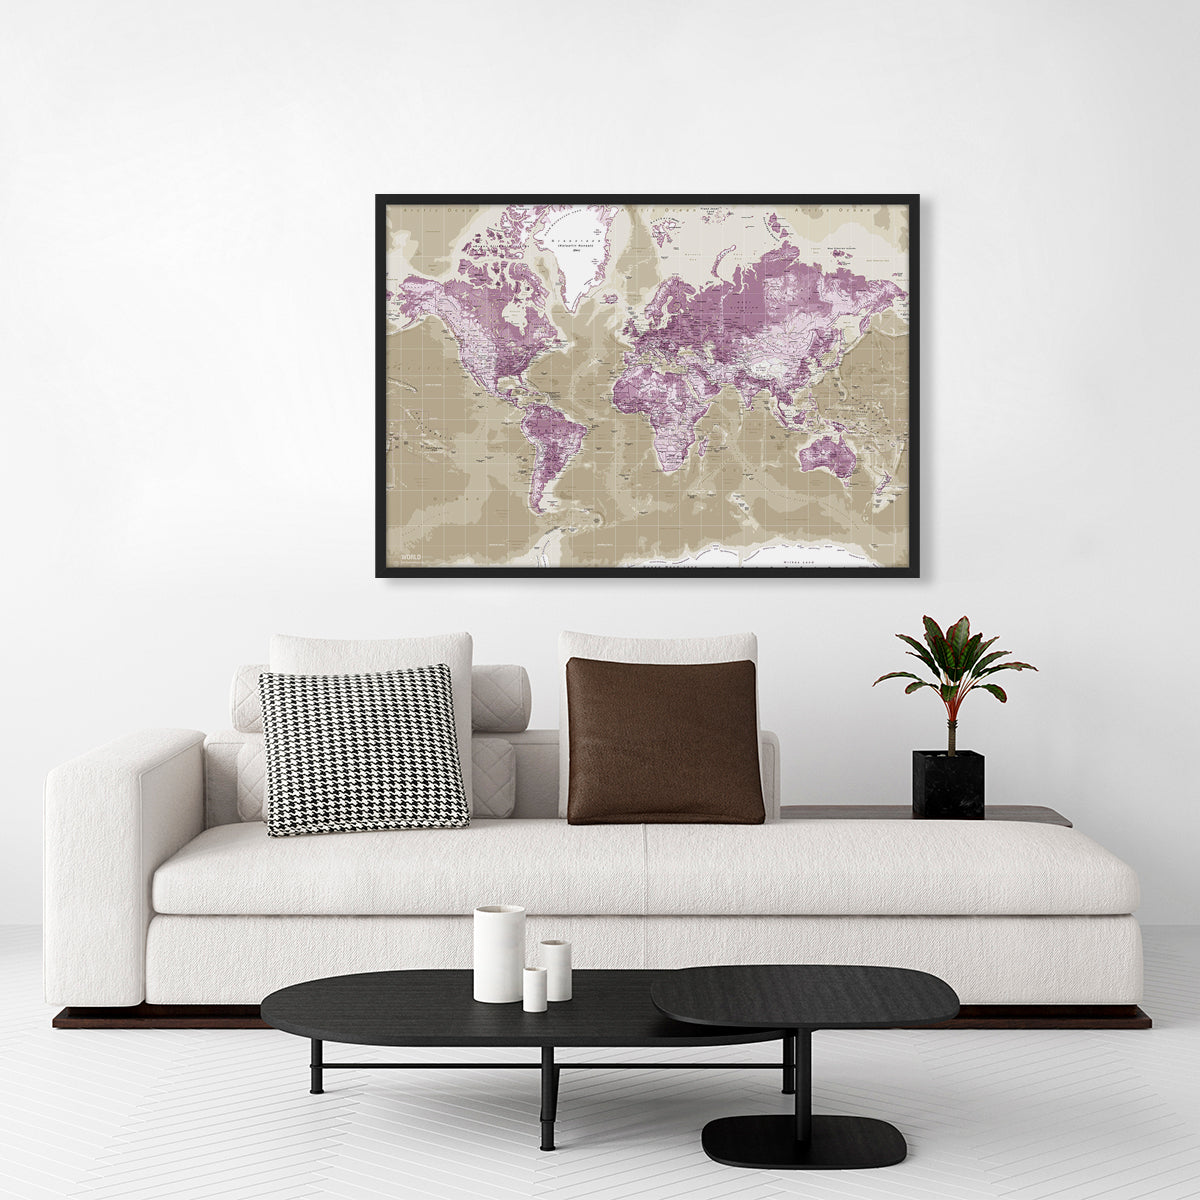 Worldmap Pin Board, H115, Purple fra Incado